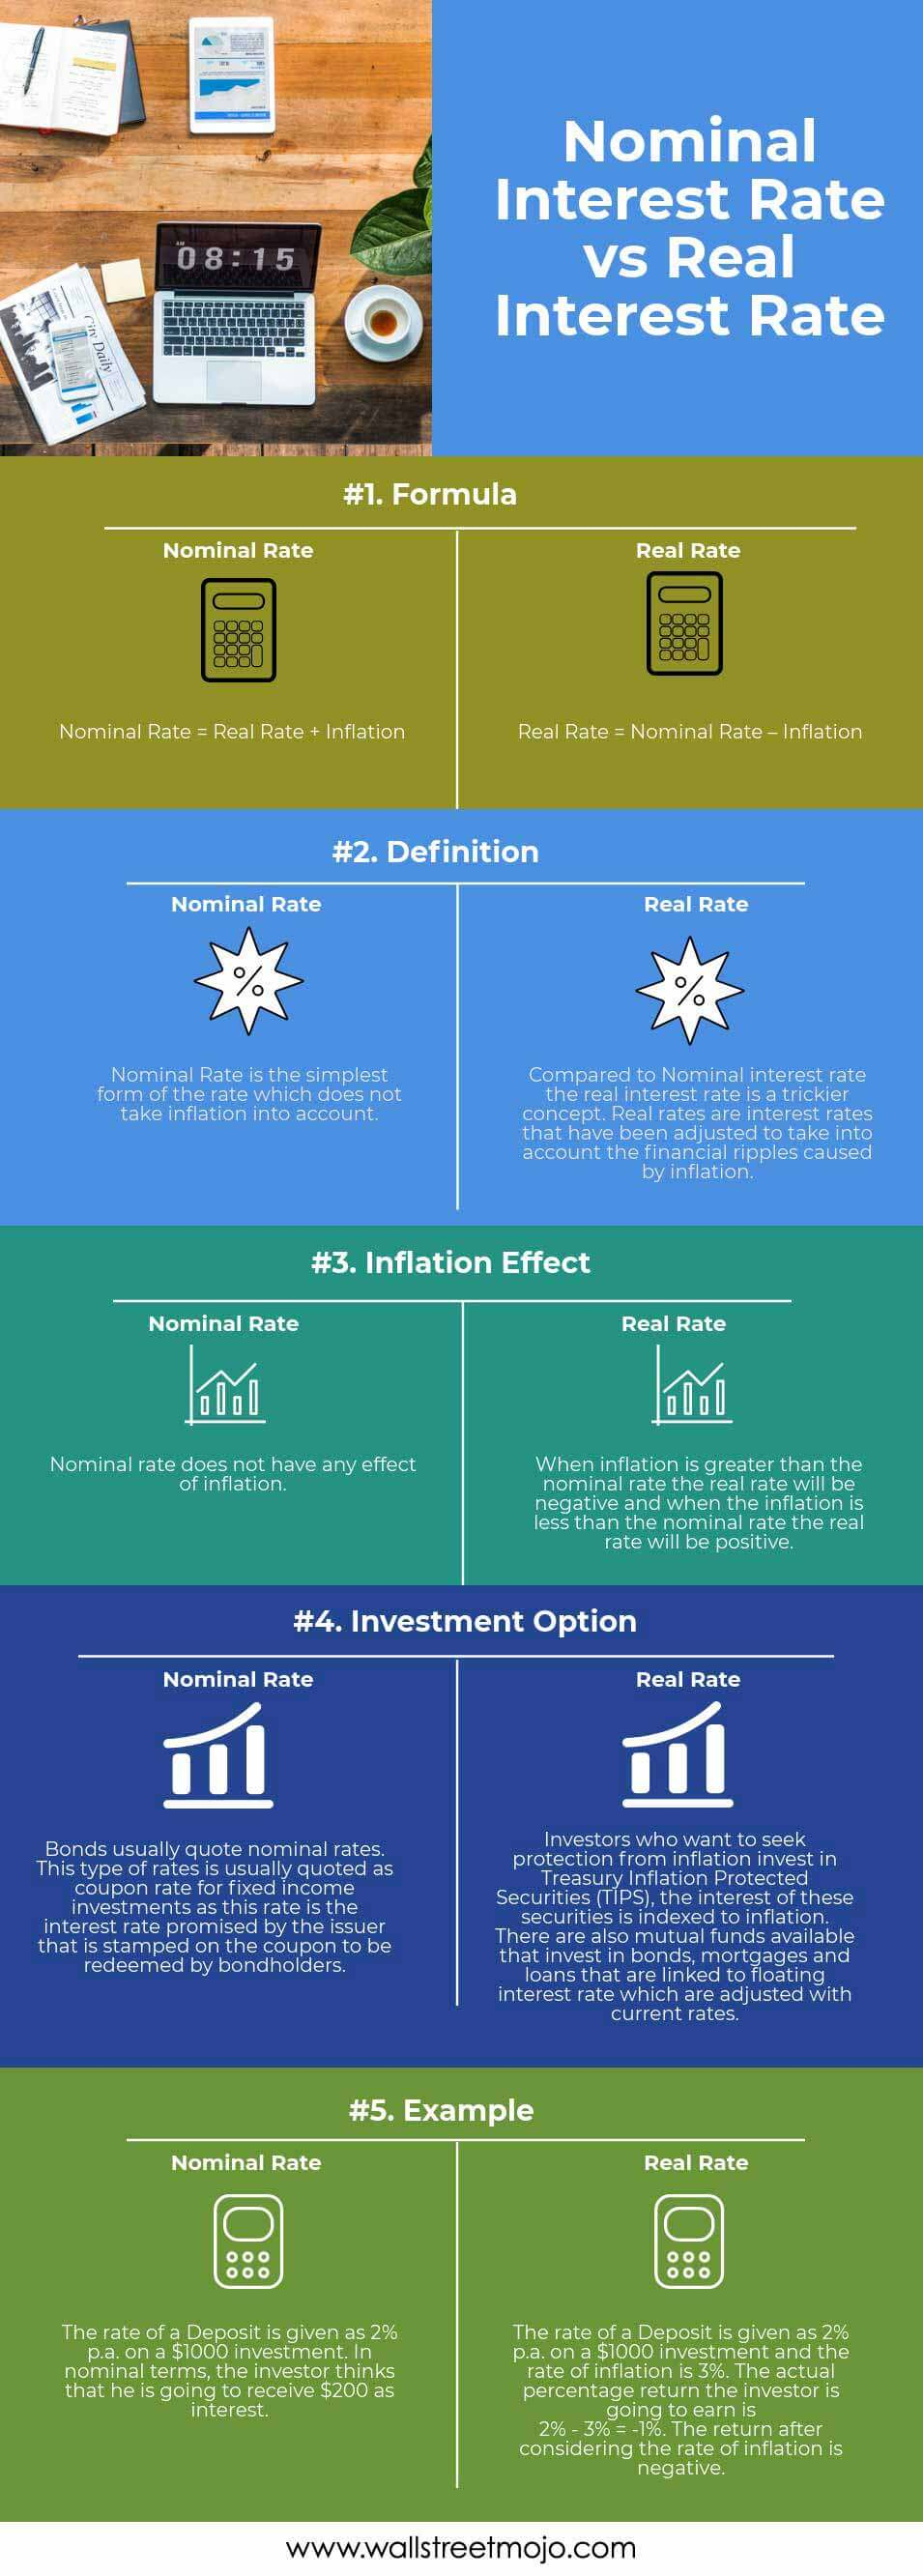 Nominal-Interest-Rate-vs-Real-Interest-Rate-info